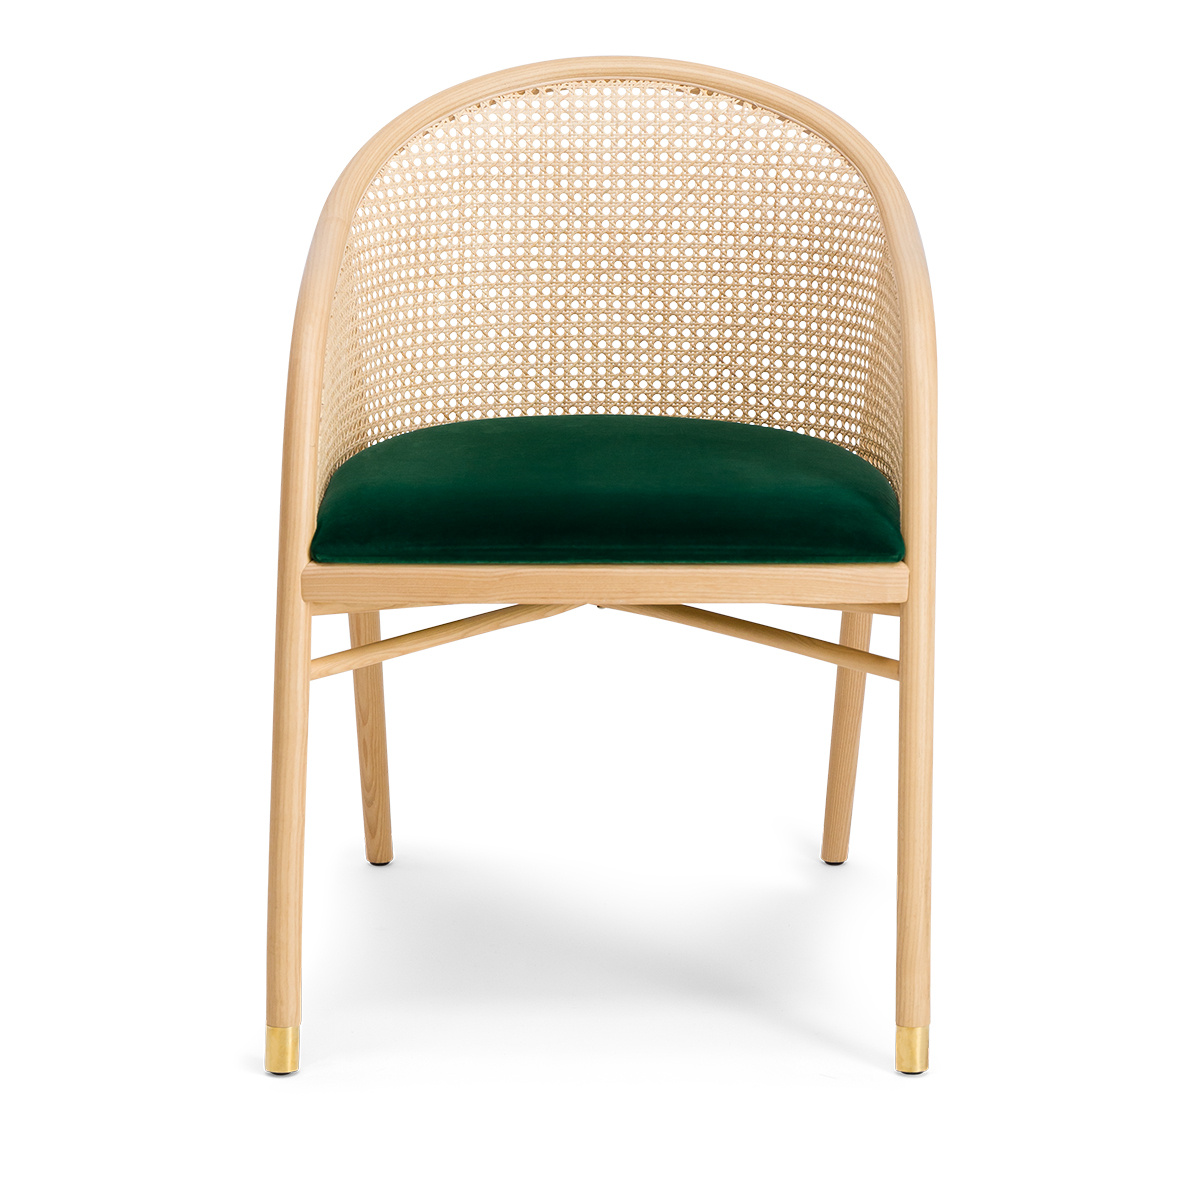 Cavallo Armchair, Fir Green Velvet with Natural Frame